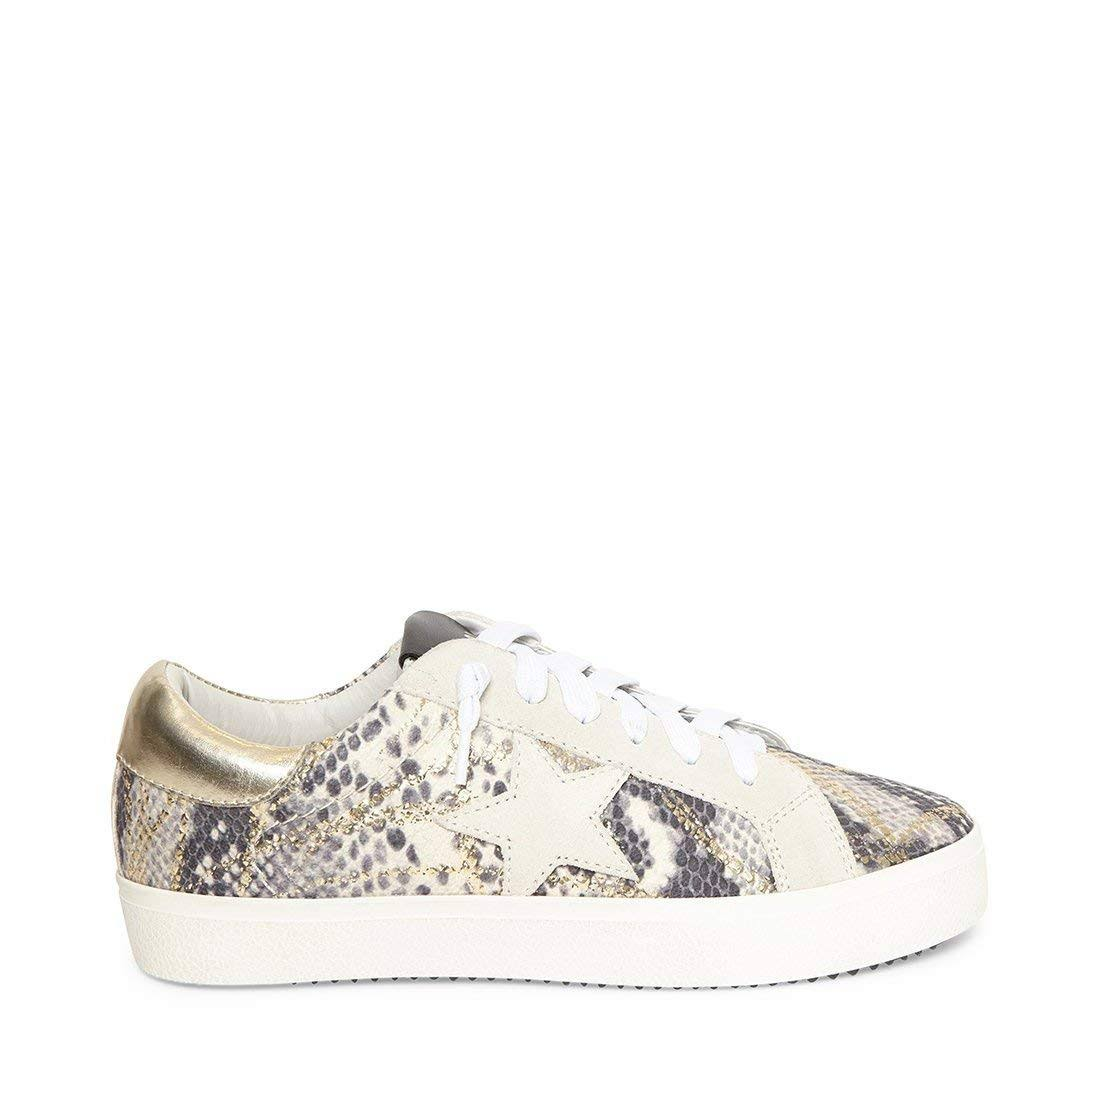 Steve Madden Philosophy Gold Snake Sneakers